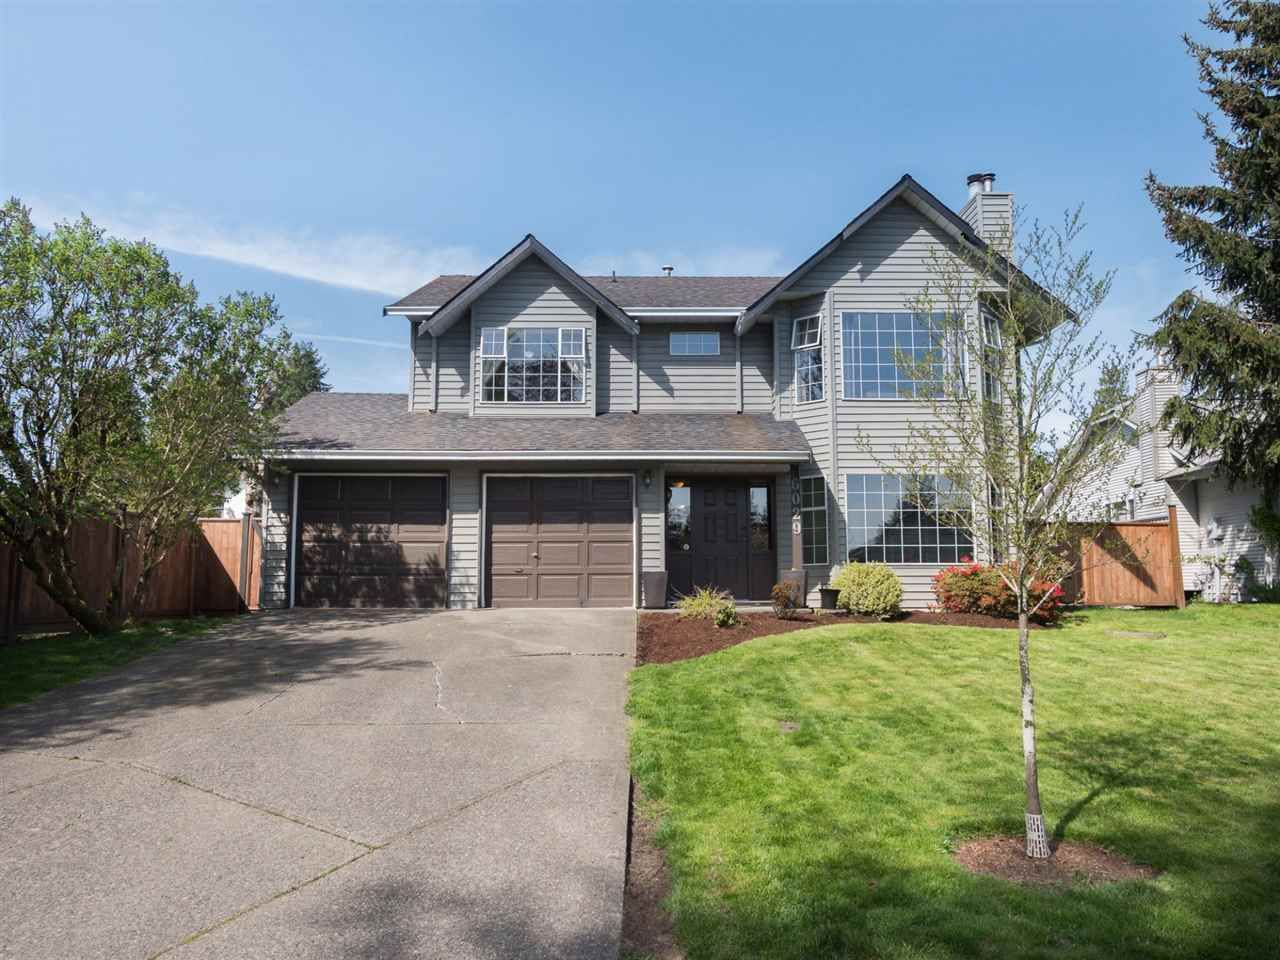 Main Photo: 6029 174 Street in Surrey: Cloverdale BC House for sale (Cloverdale)  : MLS®# R2261593